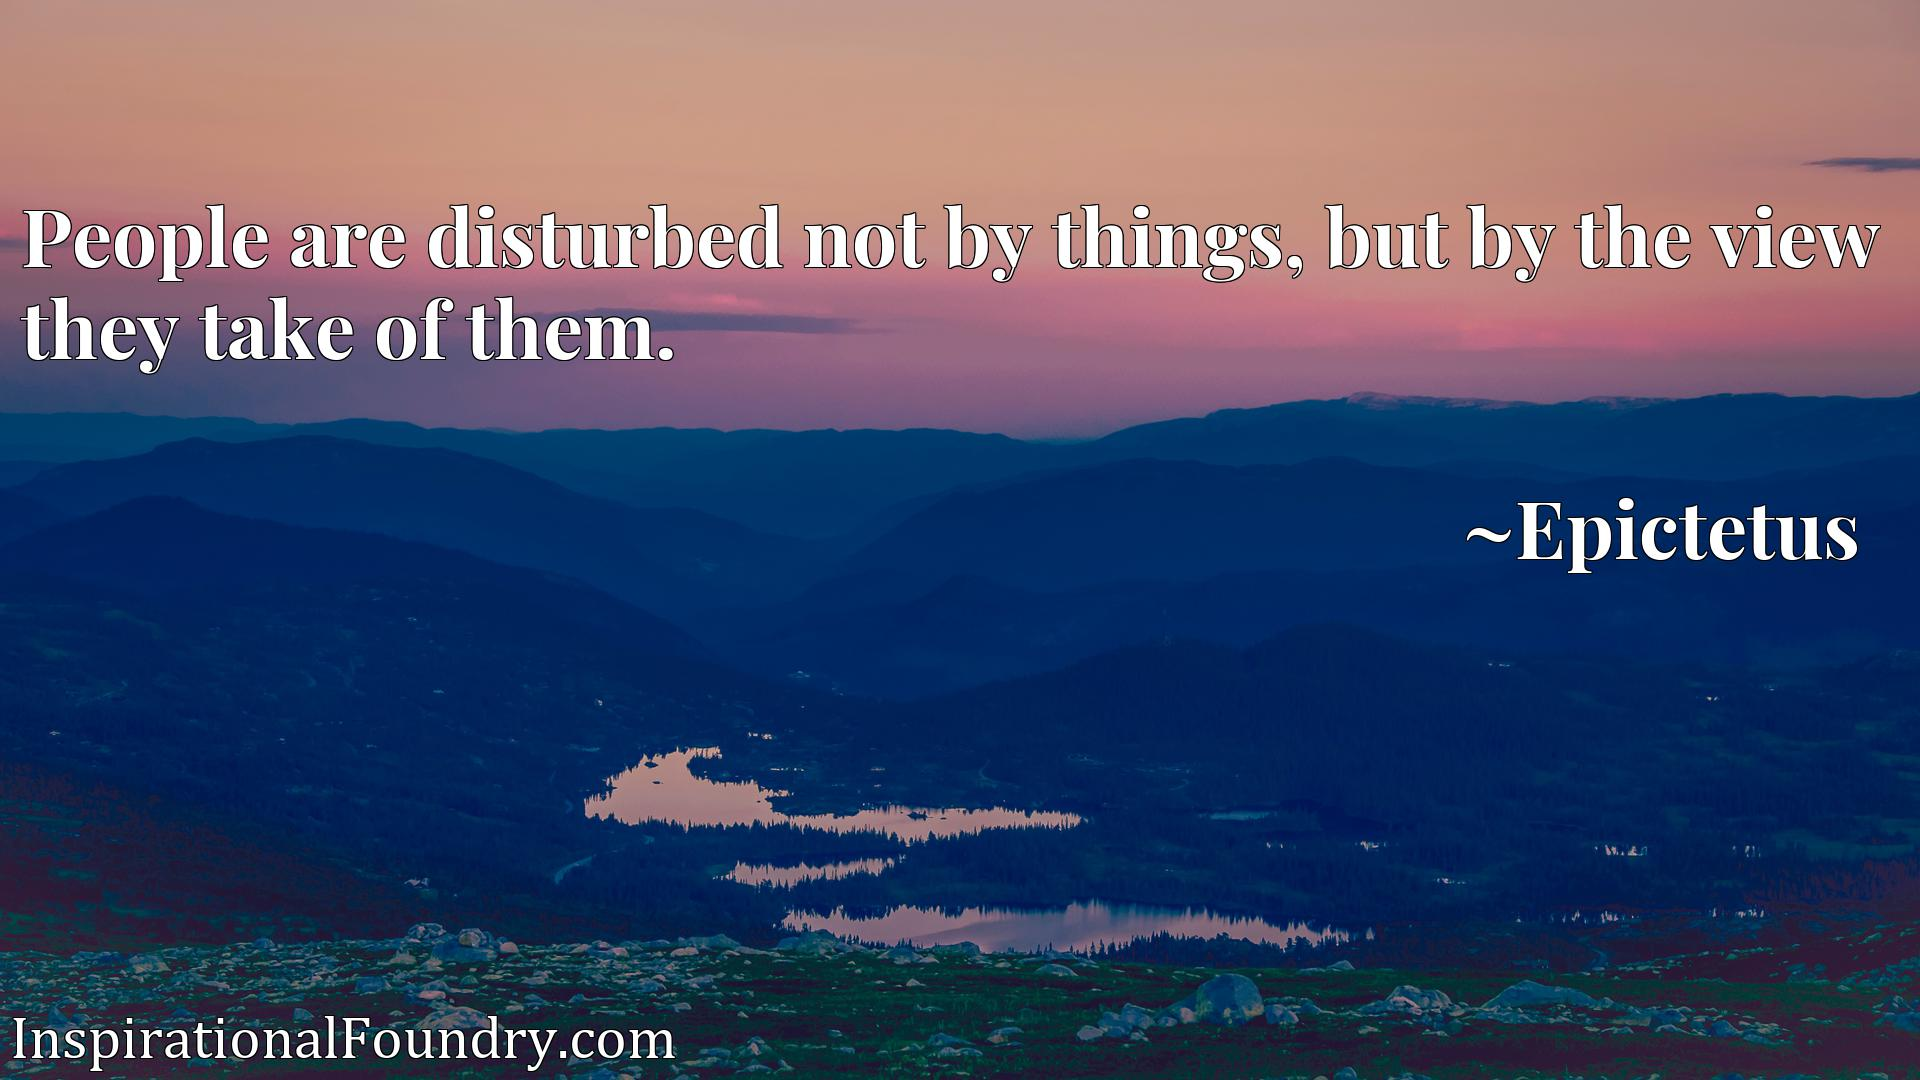 People are disturbed not by things, but by the view they take of them.